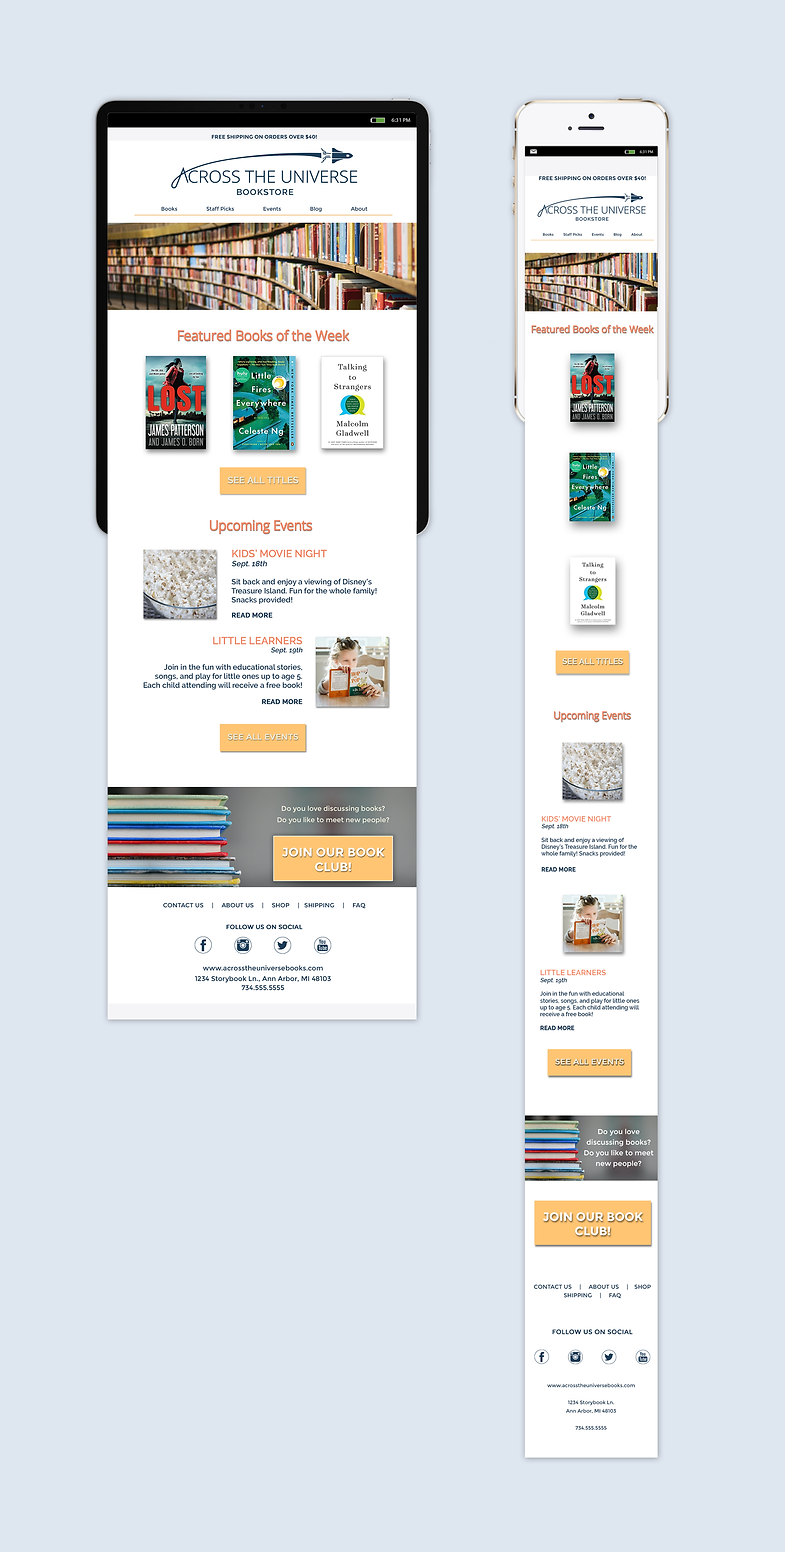 Across The Universe Newsletter Concept 1